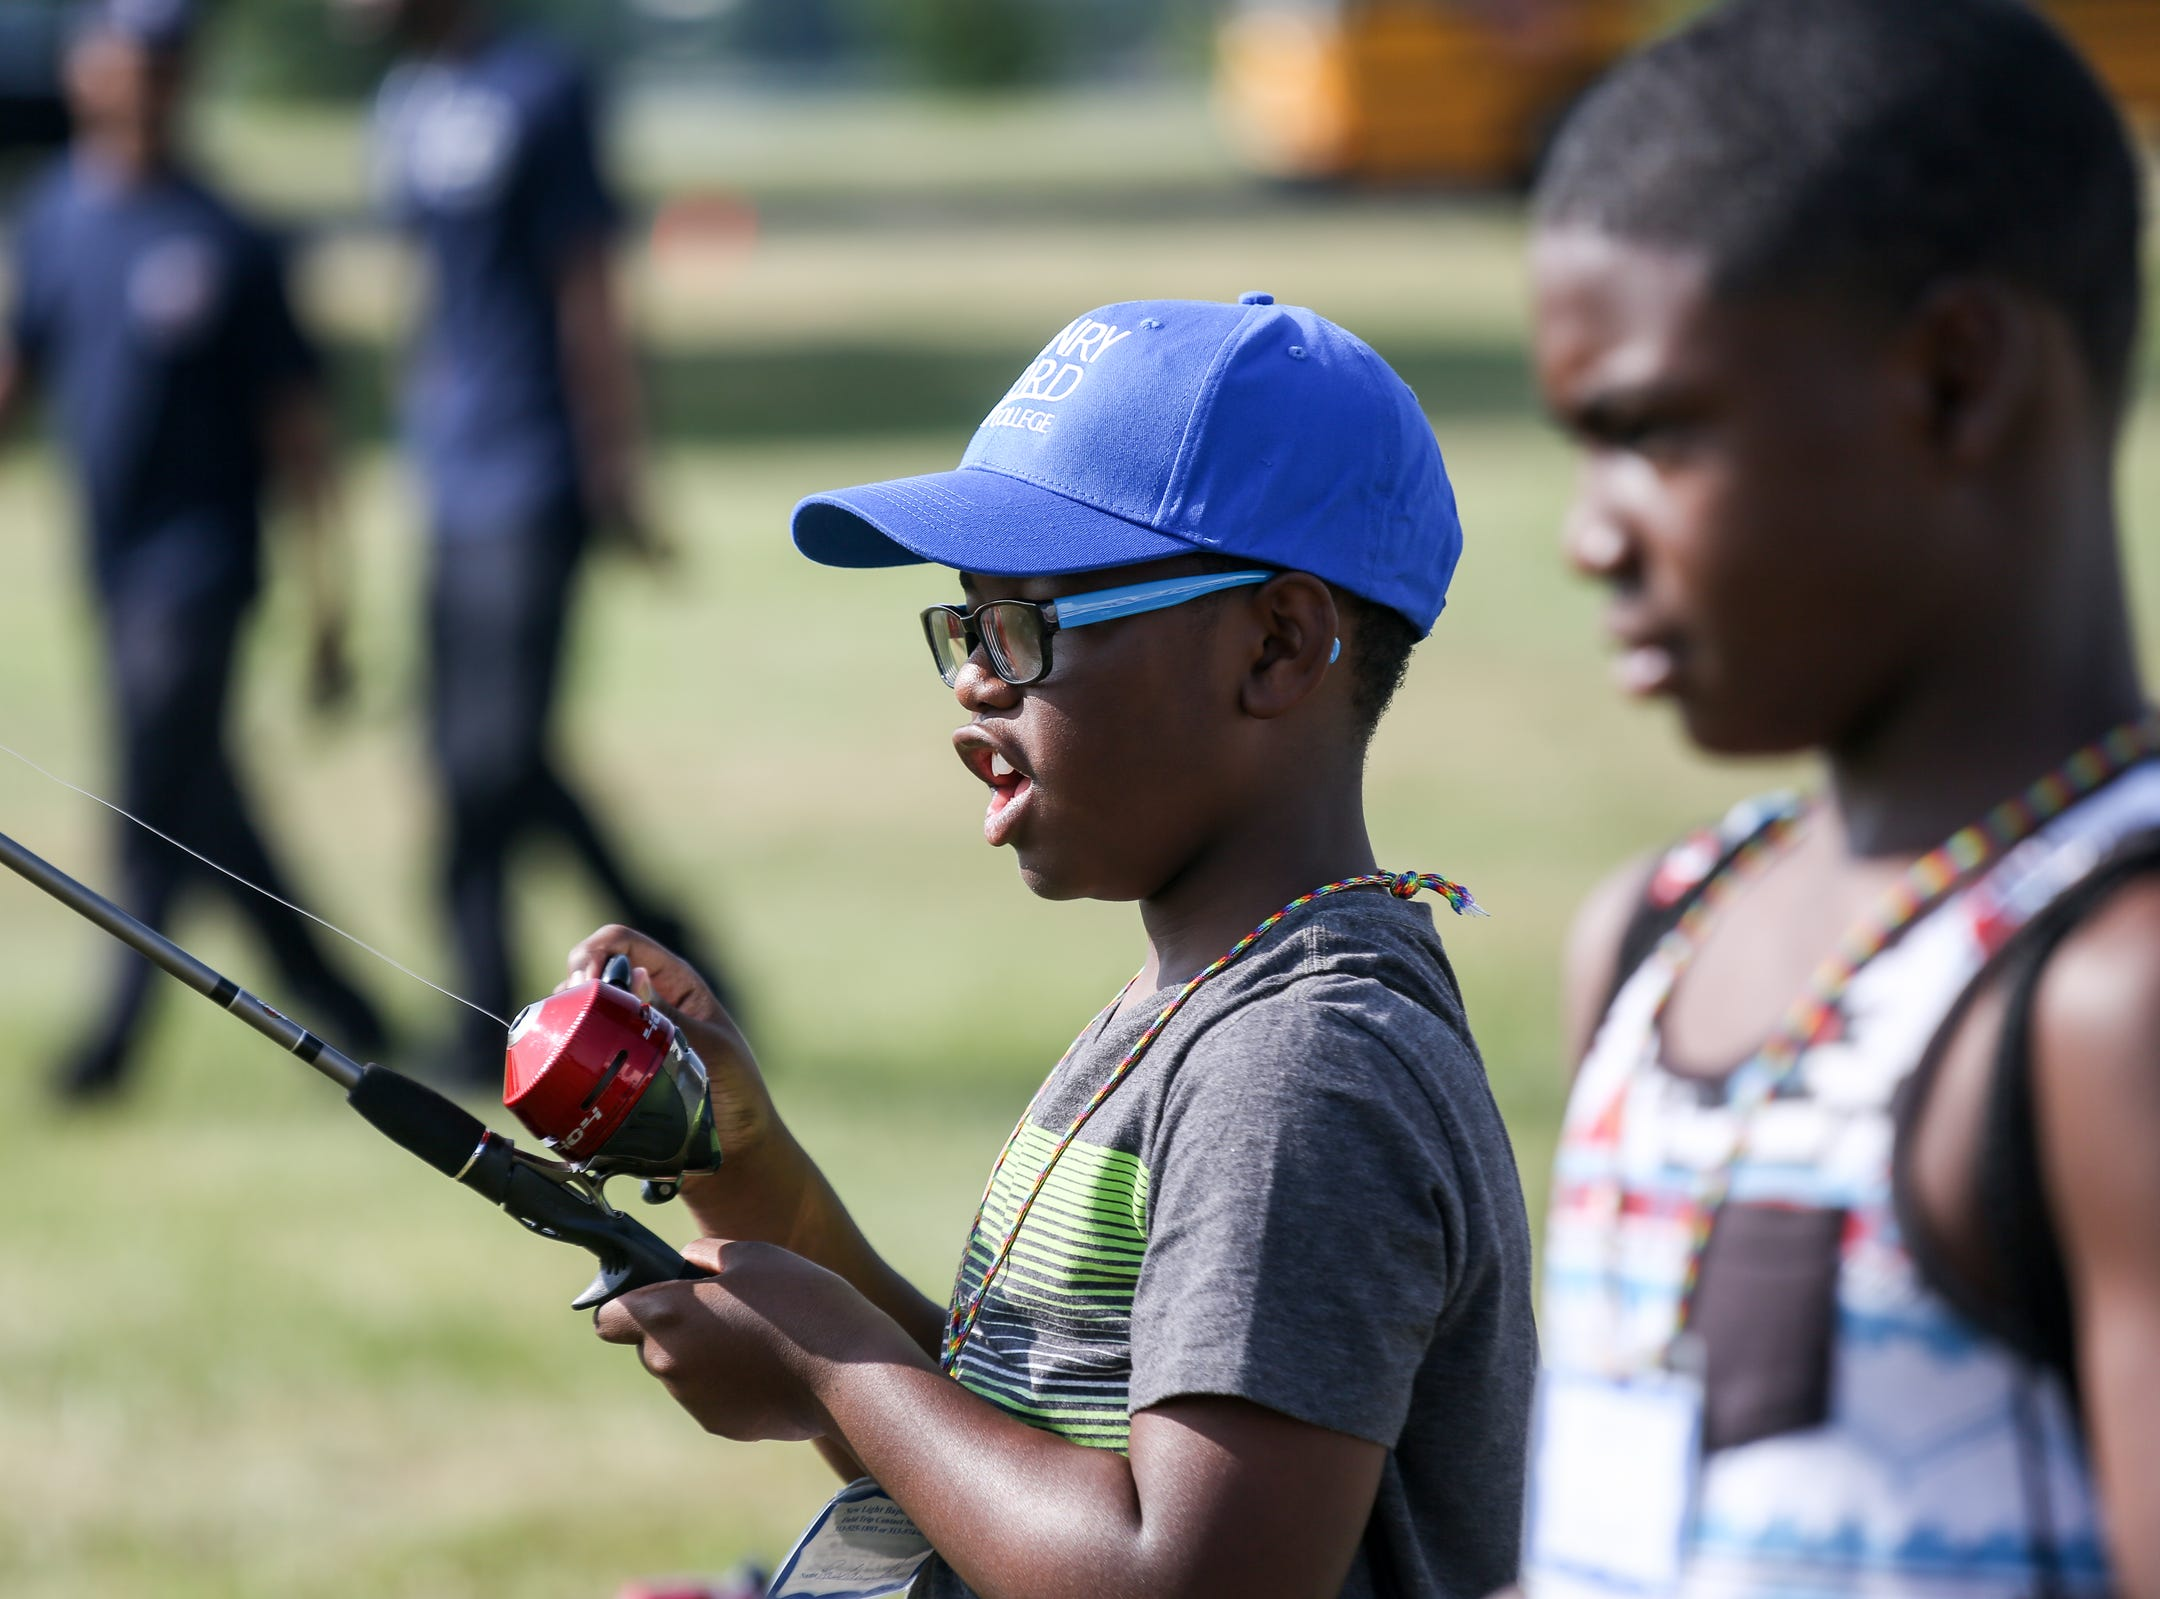 Rashaun William, 12, of Detroit practices casting a fishing pole at the Outdoor Adventure Center's Backyard Bass game during Metro Detroit Youth Day at Belle Isle in Detroit on Wednesday, July 11, 2018.